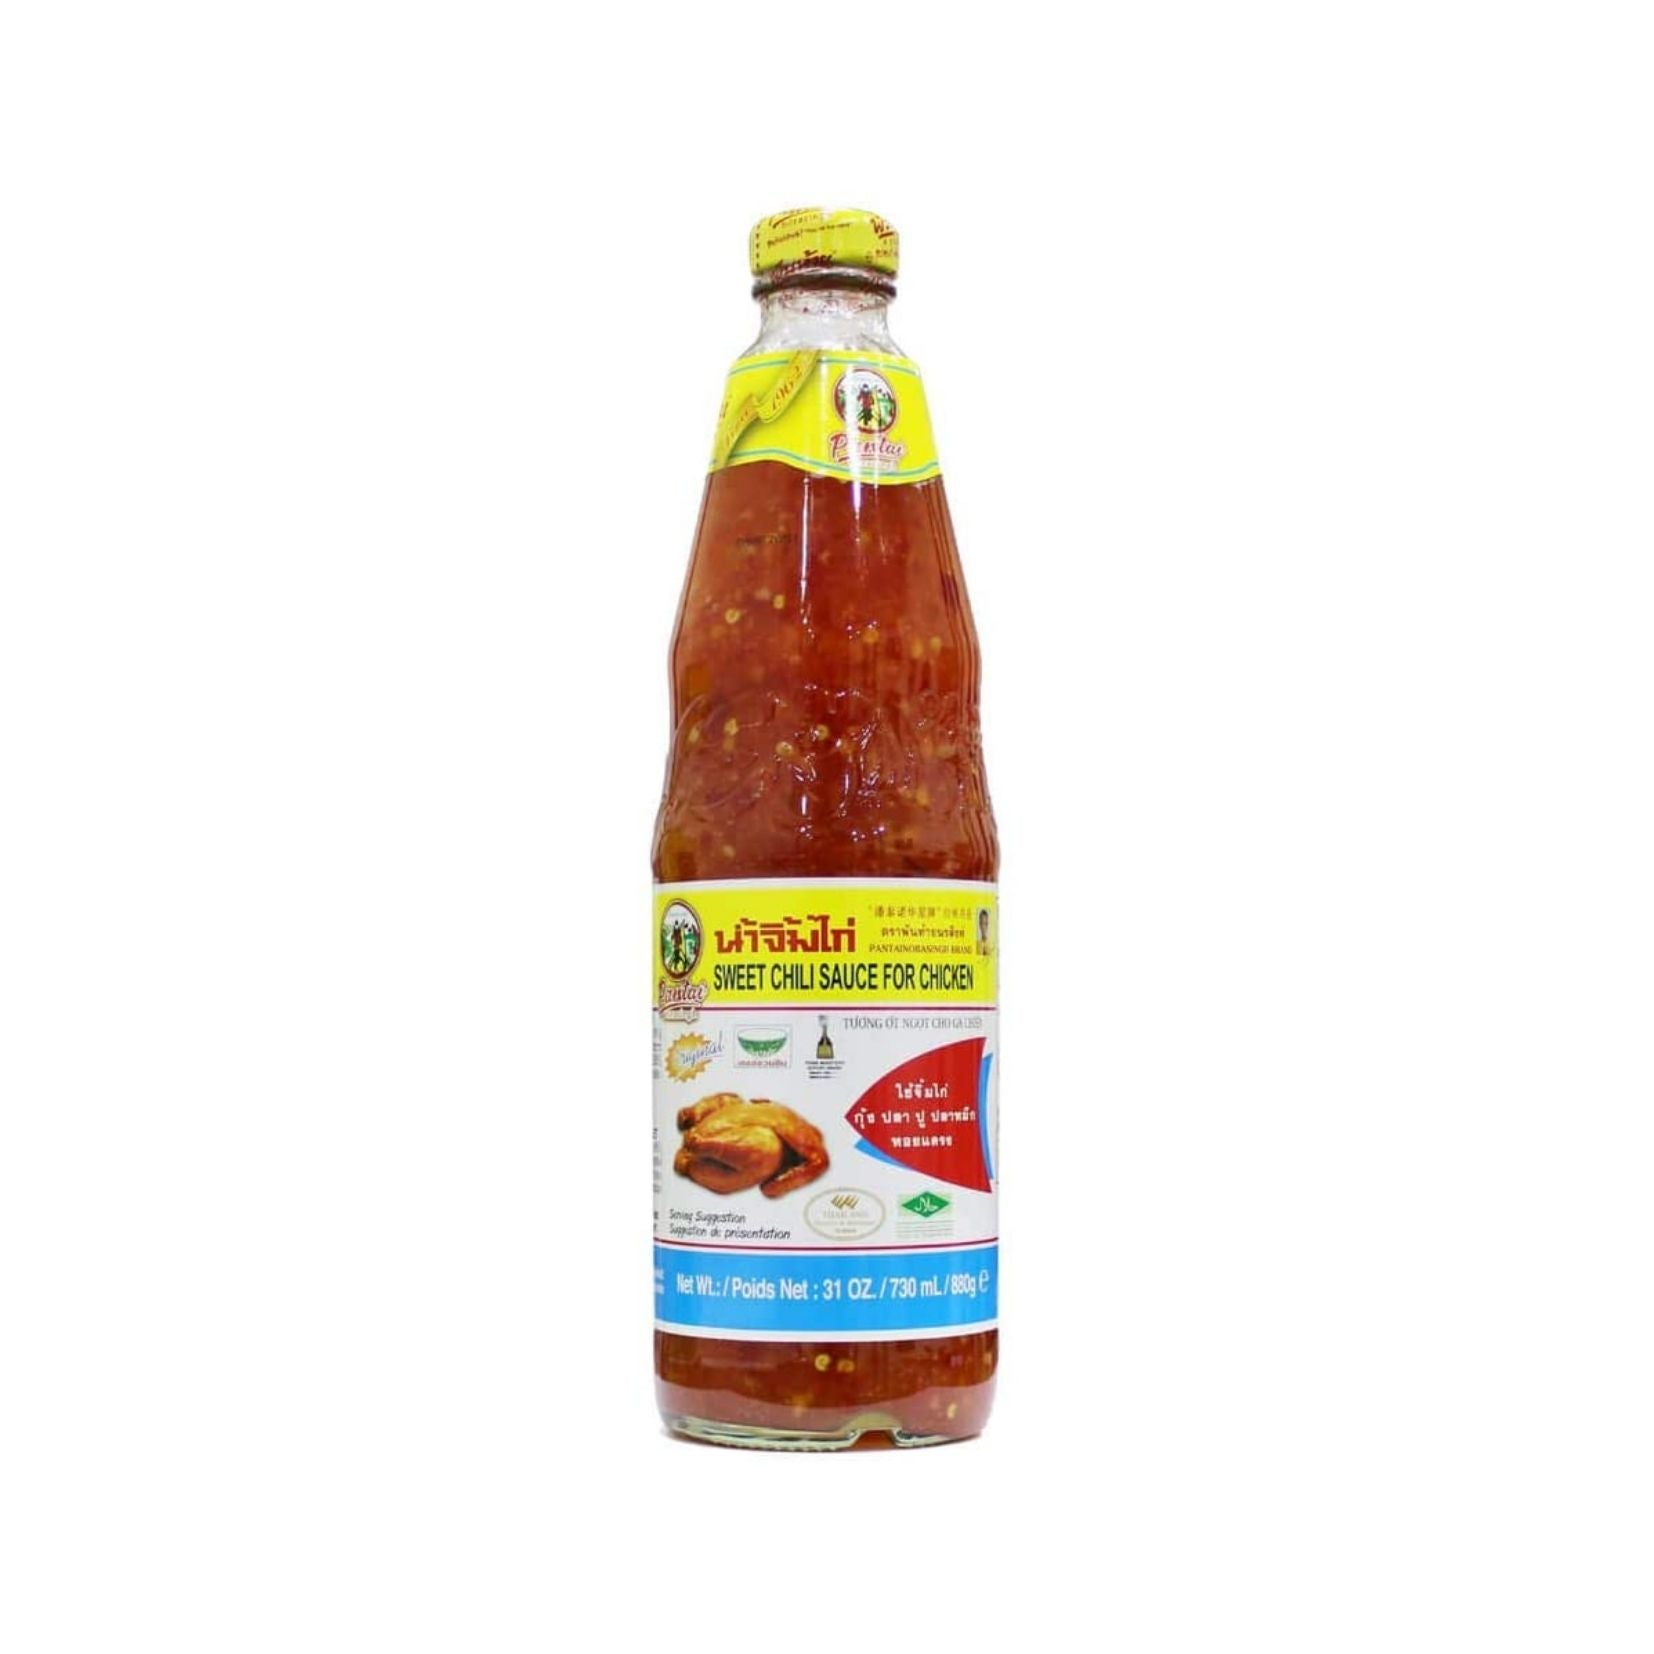 Sweet Chili Sauce - 730ml